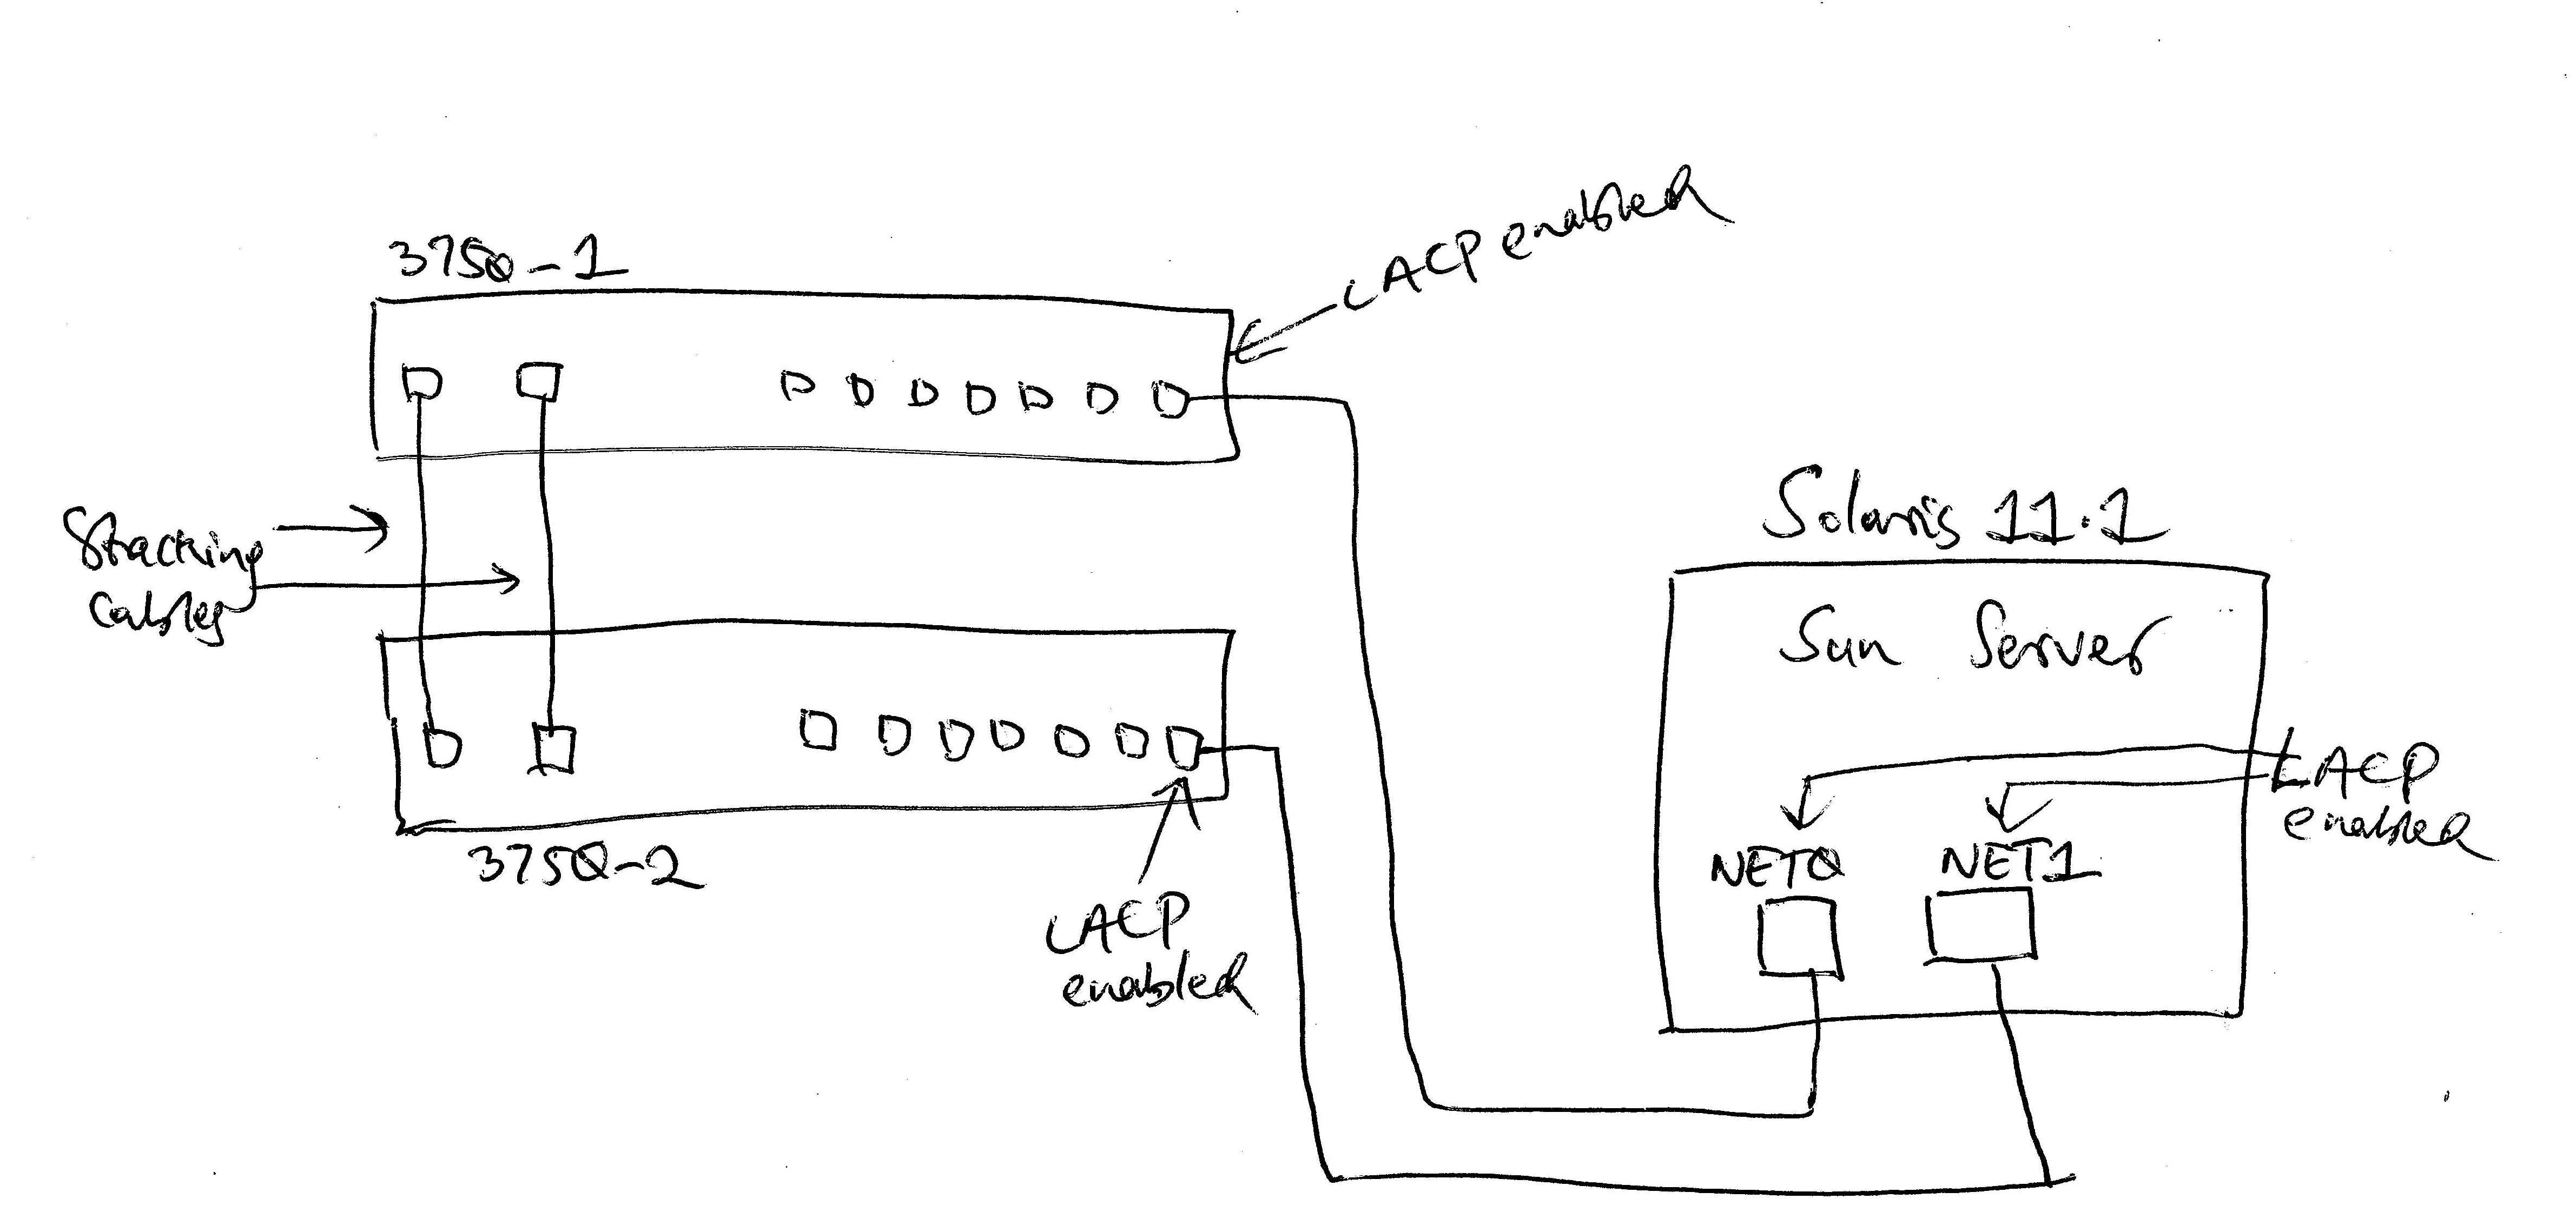 Solved: LACP load balancing in 2 switches part     - Cisco